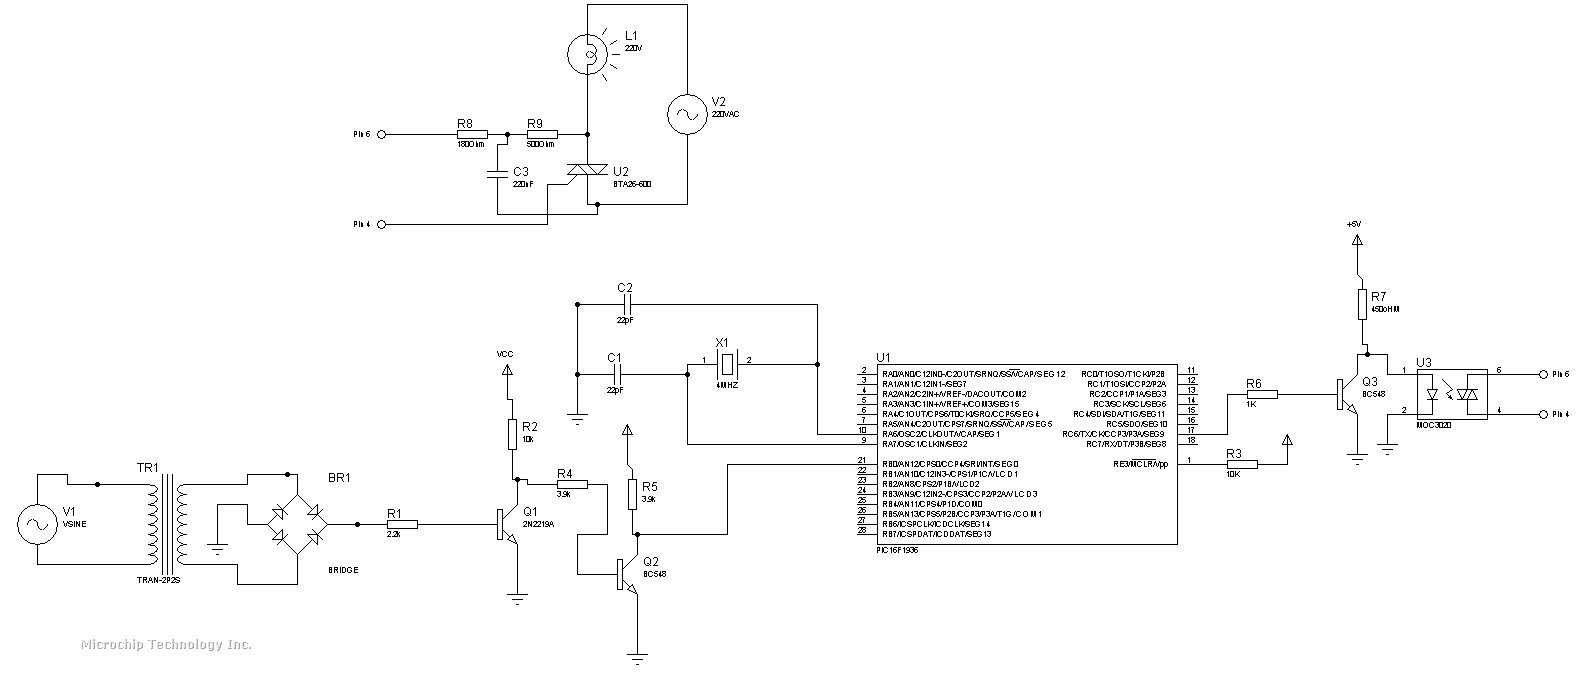 Interfacing Pic Microcontroller To A Triac For Ac Load Control Controlling Bipolar Stepper Motors With The Pic16f84 Schematic Circuit Attached Images